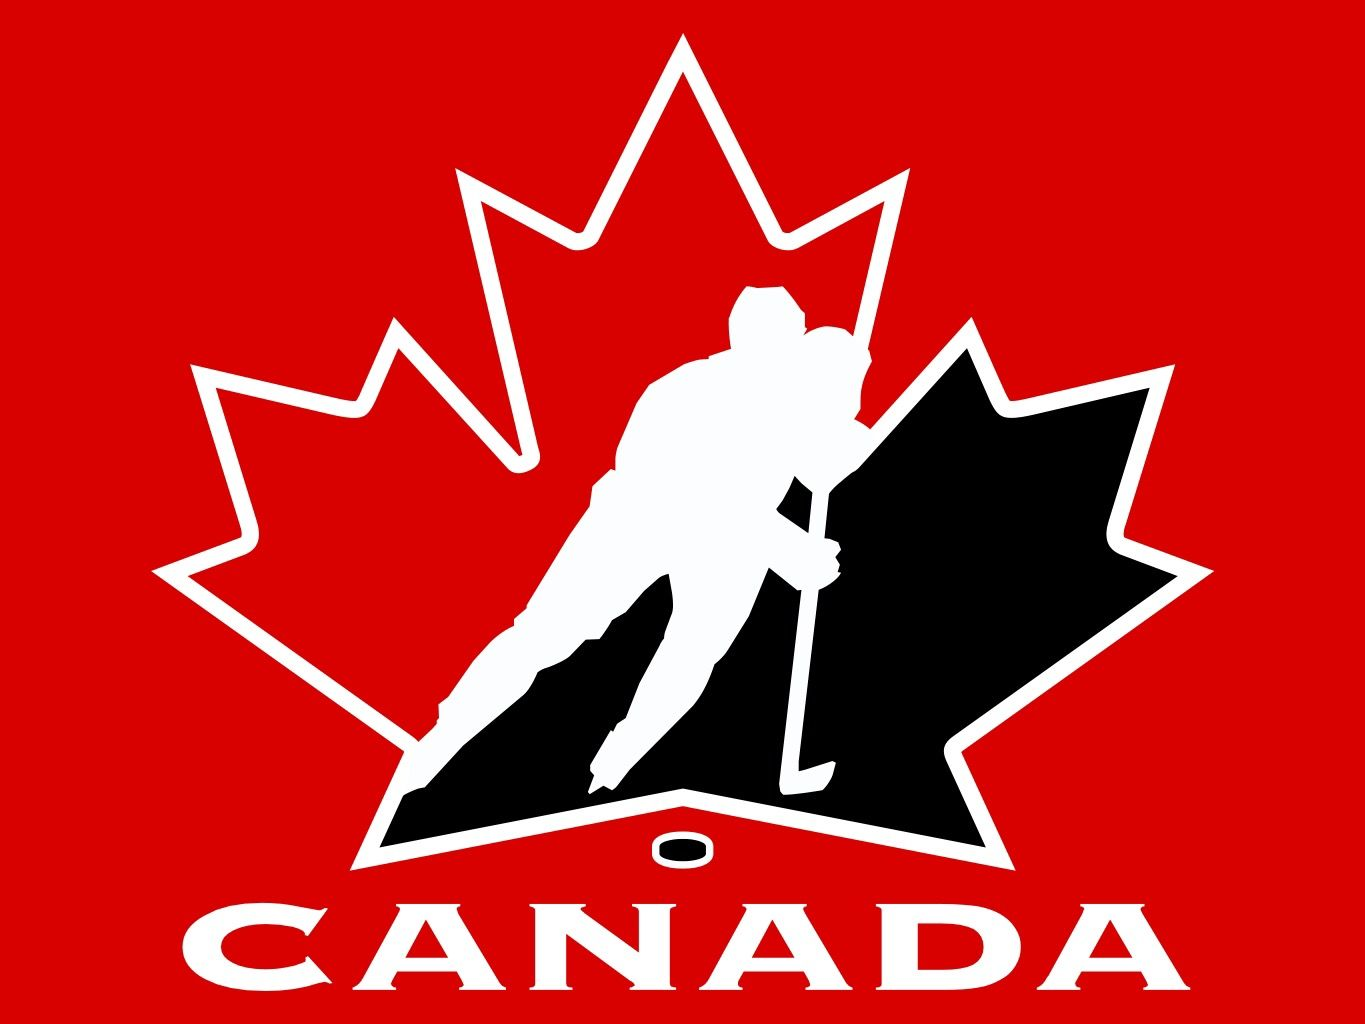 Pin By Stewart Thomson On National Hockey League Canada Hockey Team Canada Hockey Team Canada